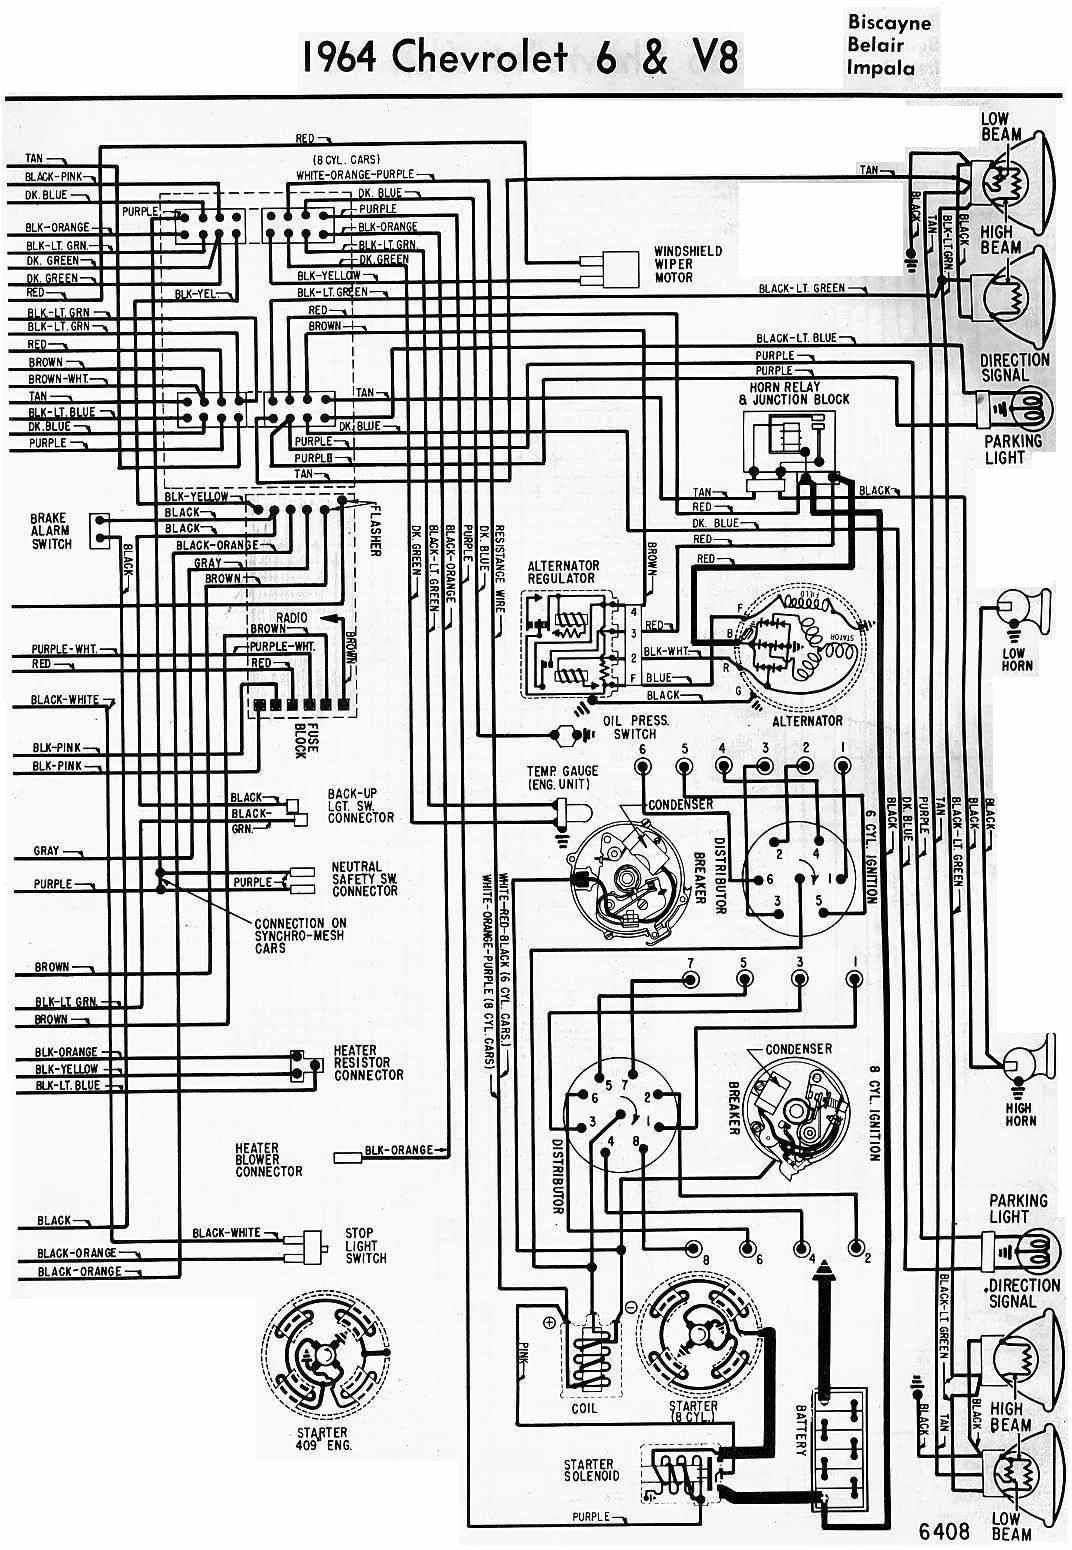 small resolution of 64 impala wiring diagram wiring diagram todays 1964 chevy impala turn signal wiring diagram wiring schematic